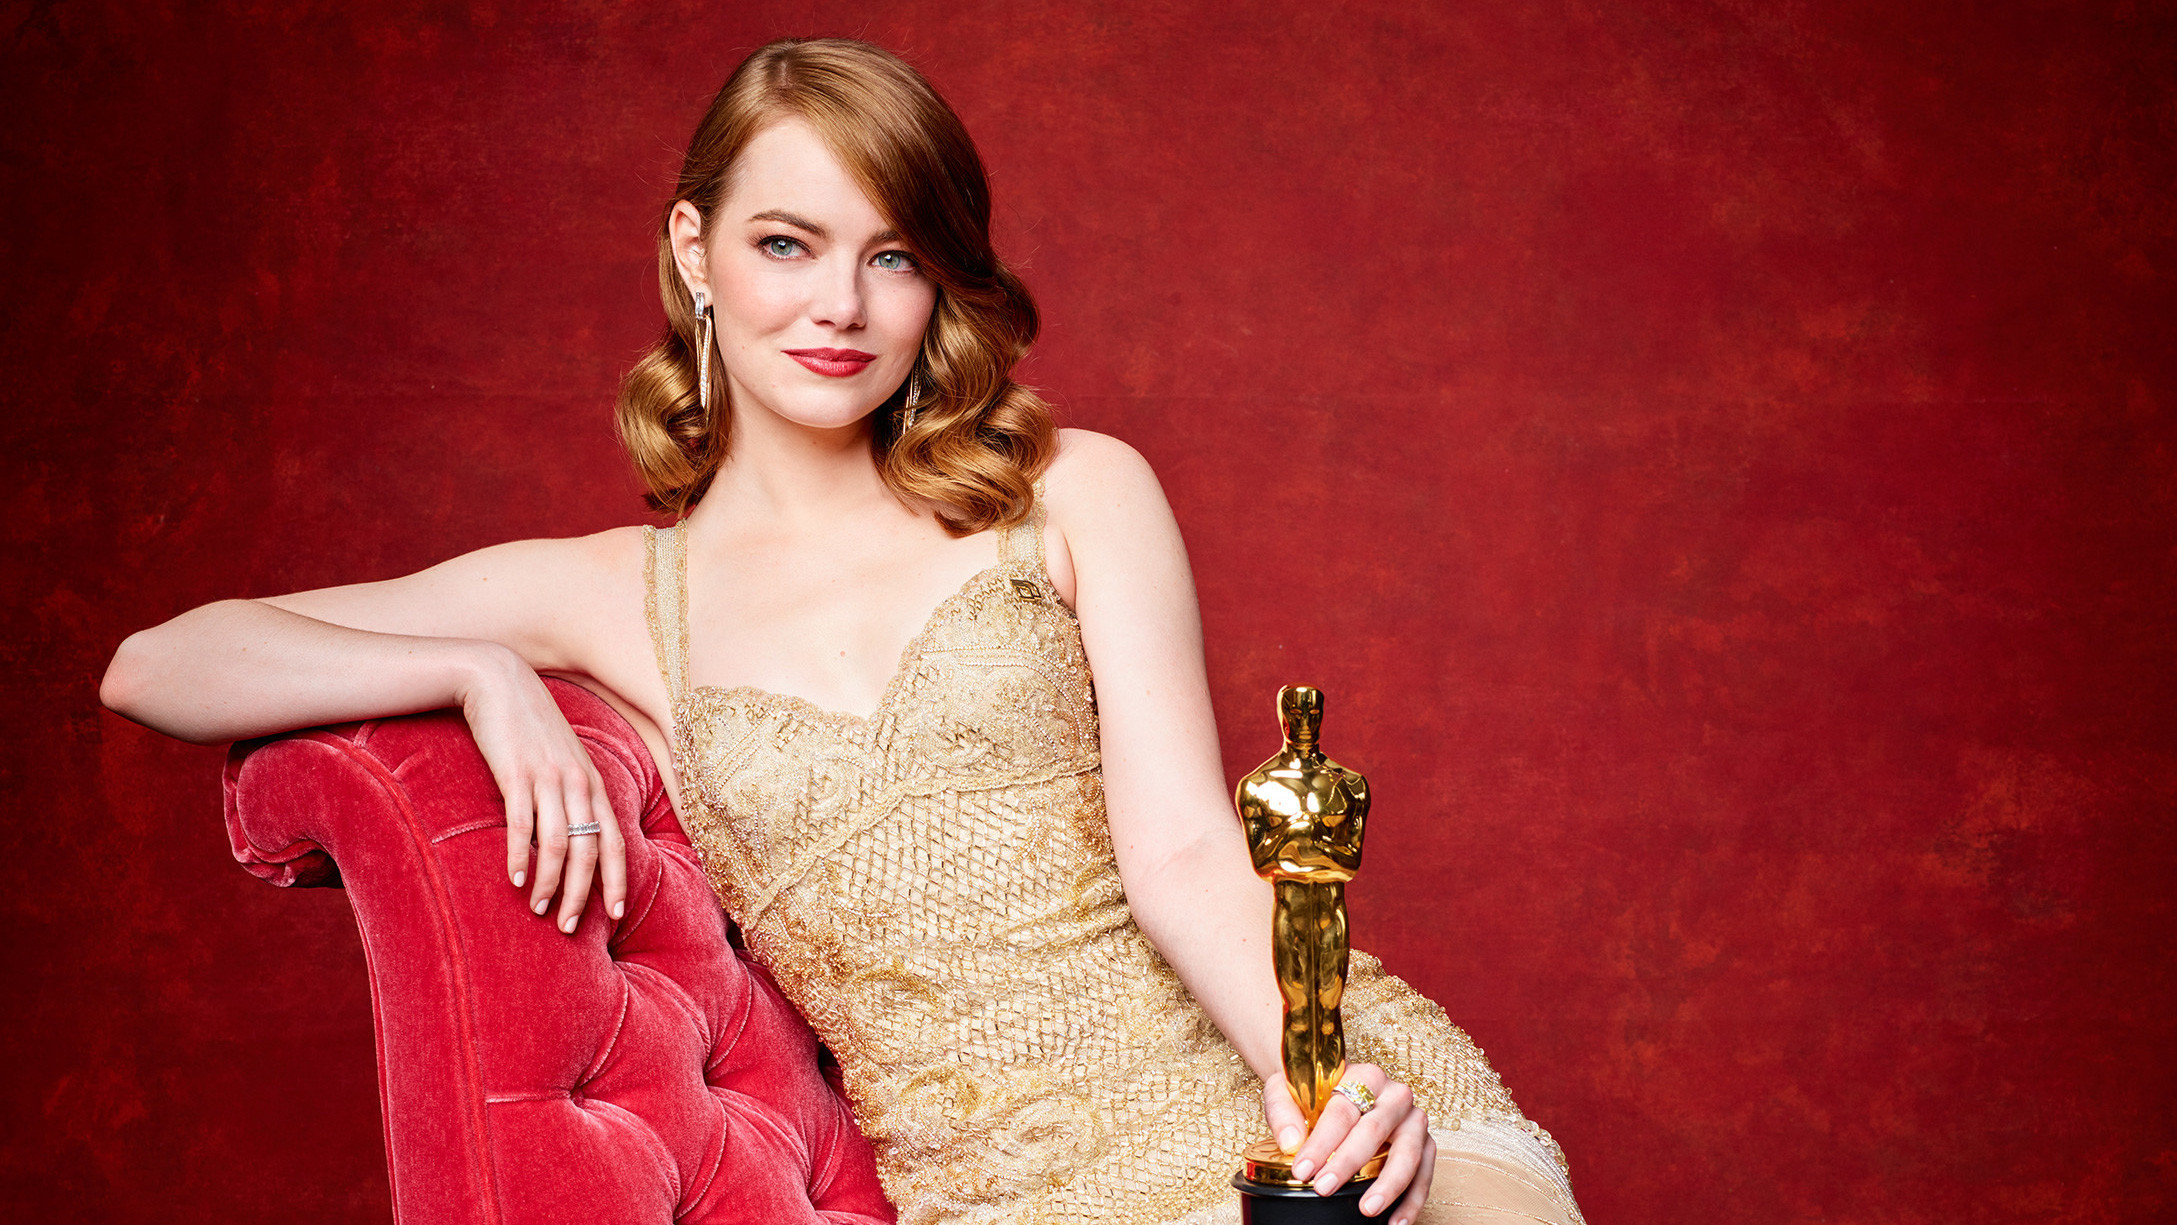 Emma Stone Academy Awards Oscars Photoshoot